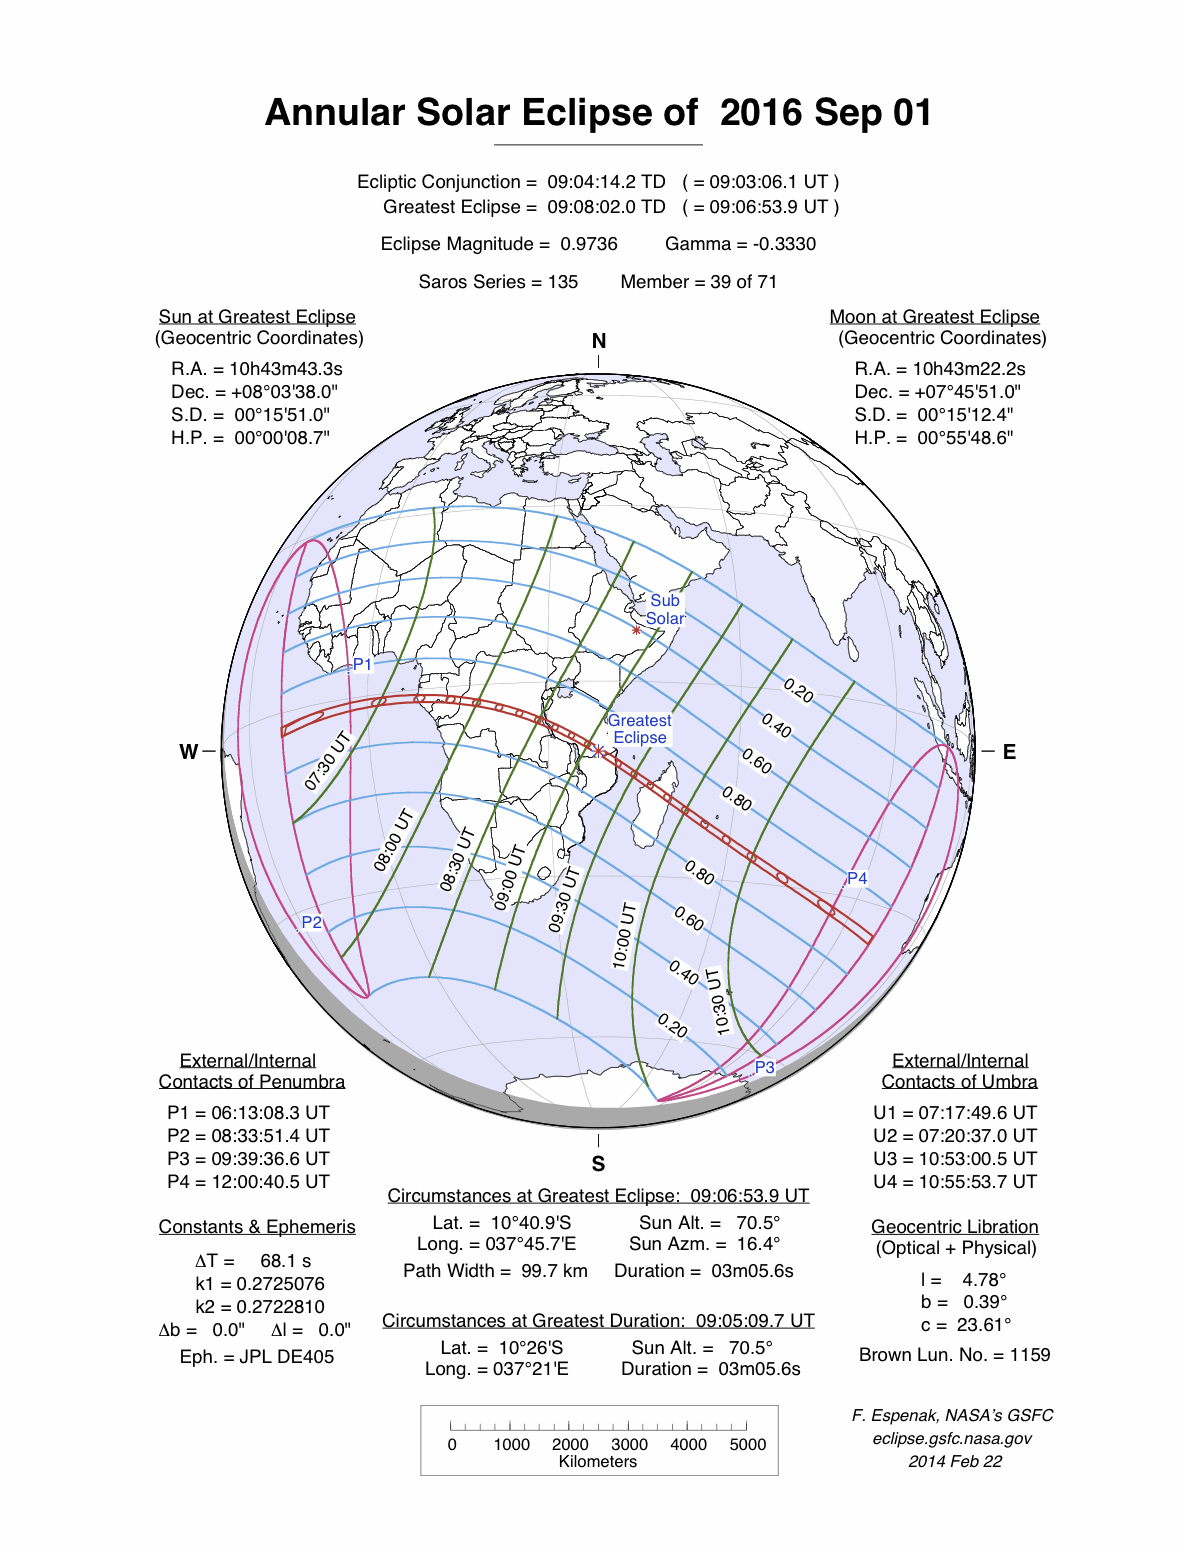 Map showing the path of the Sept. 1, 2016 annular solar eclipse across parts of Africa.